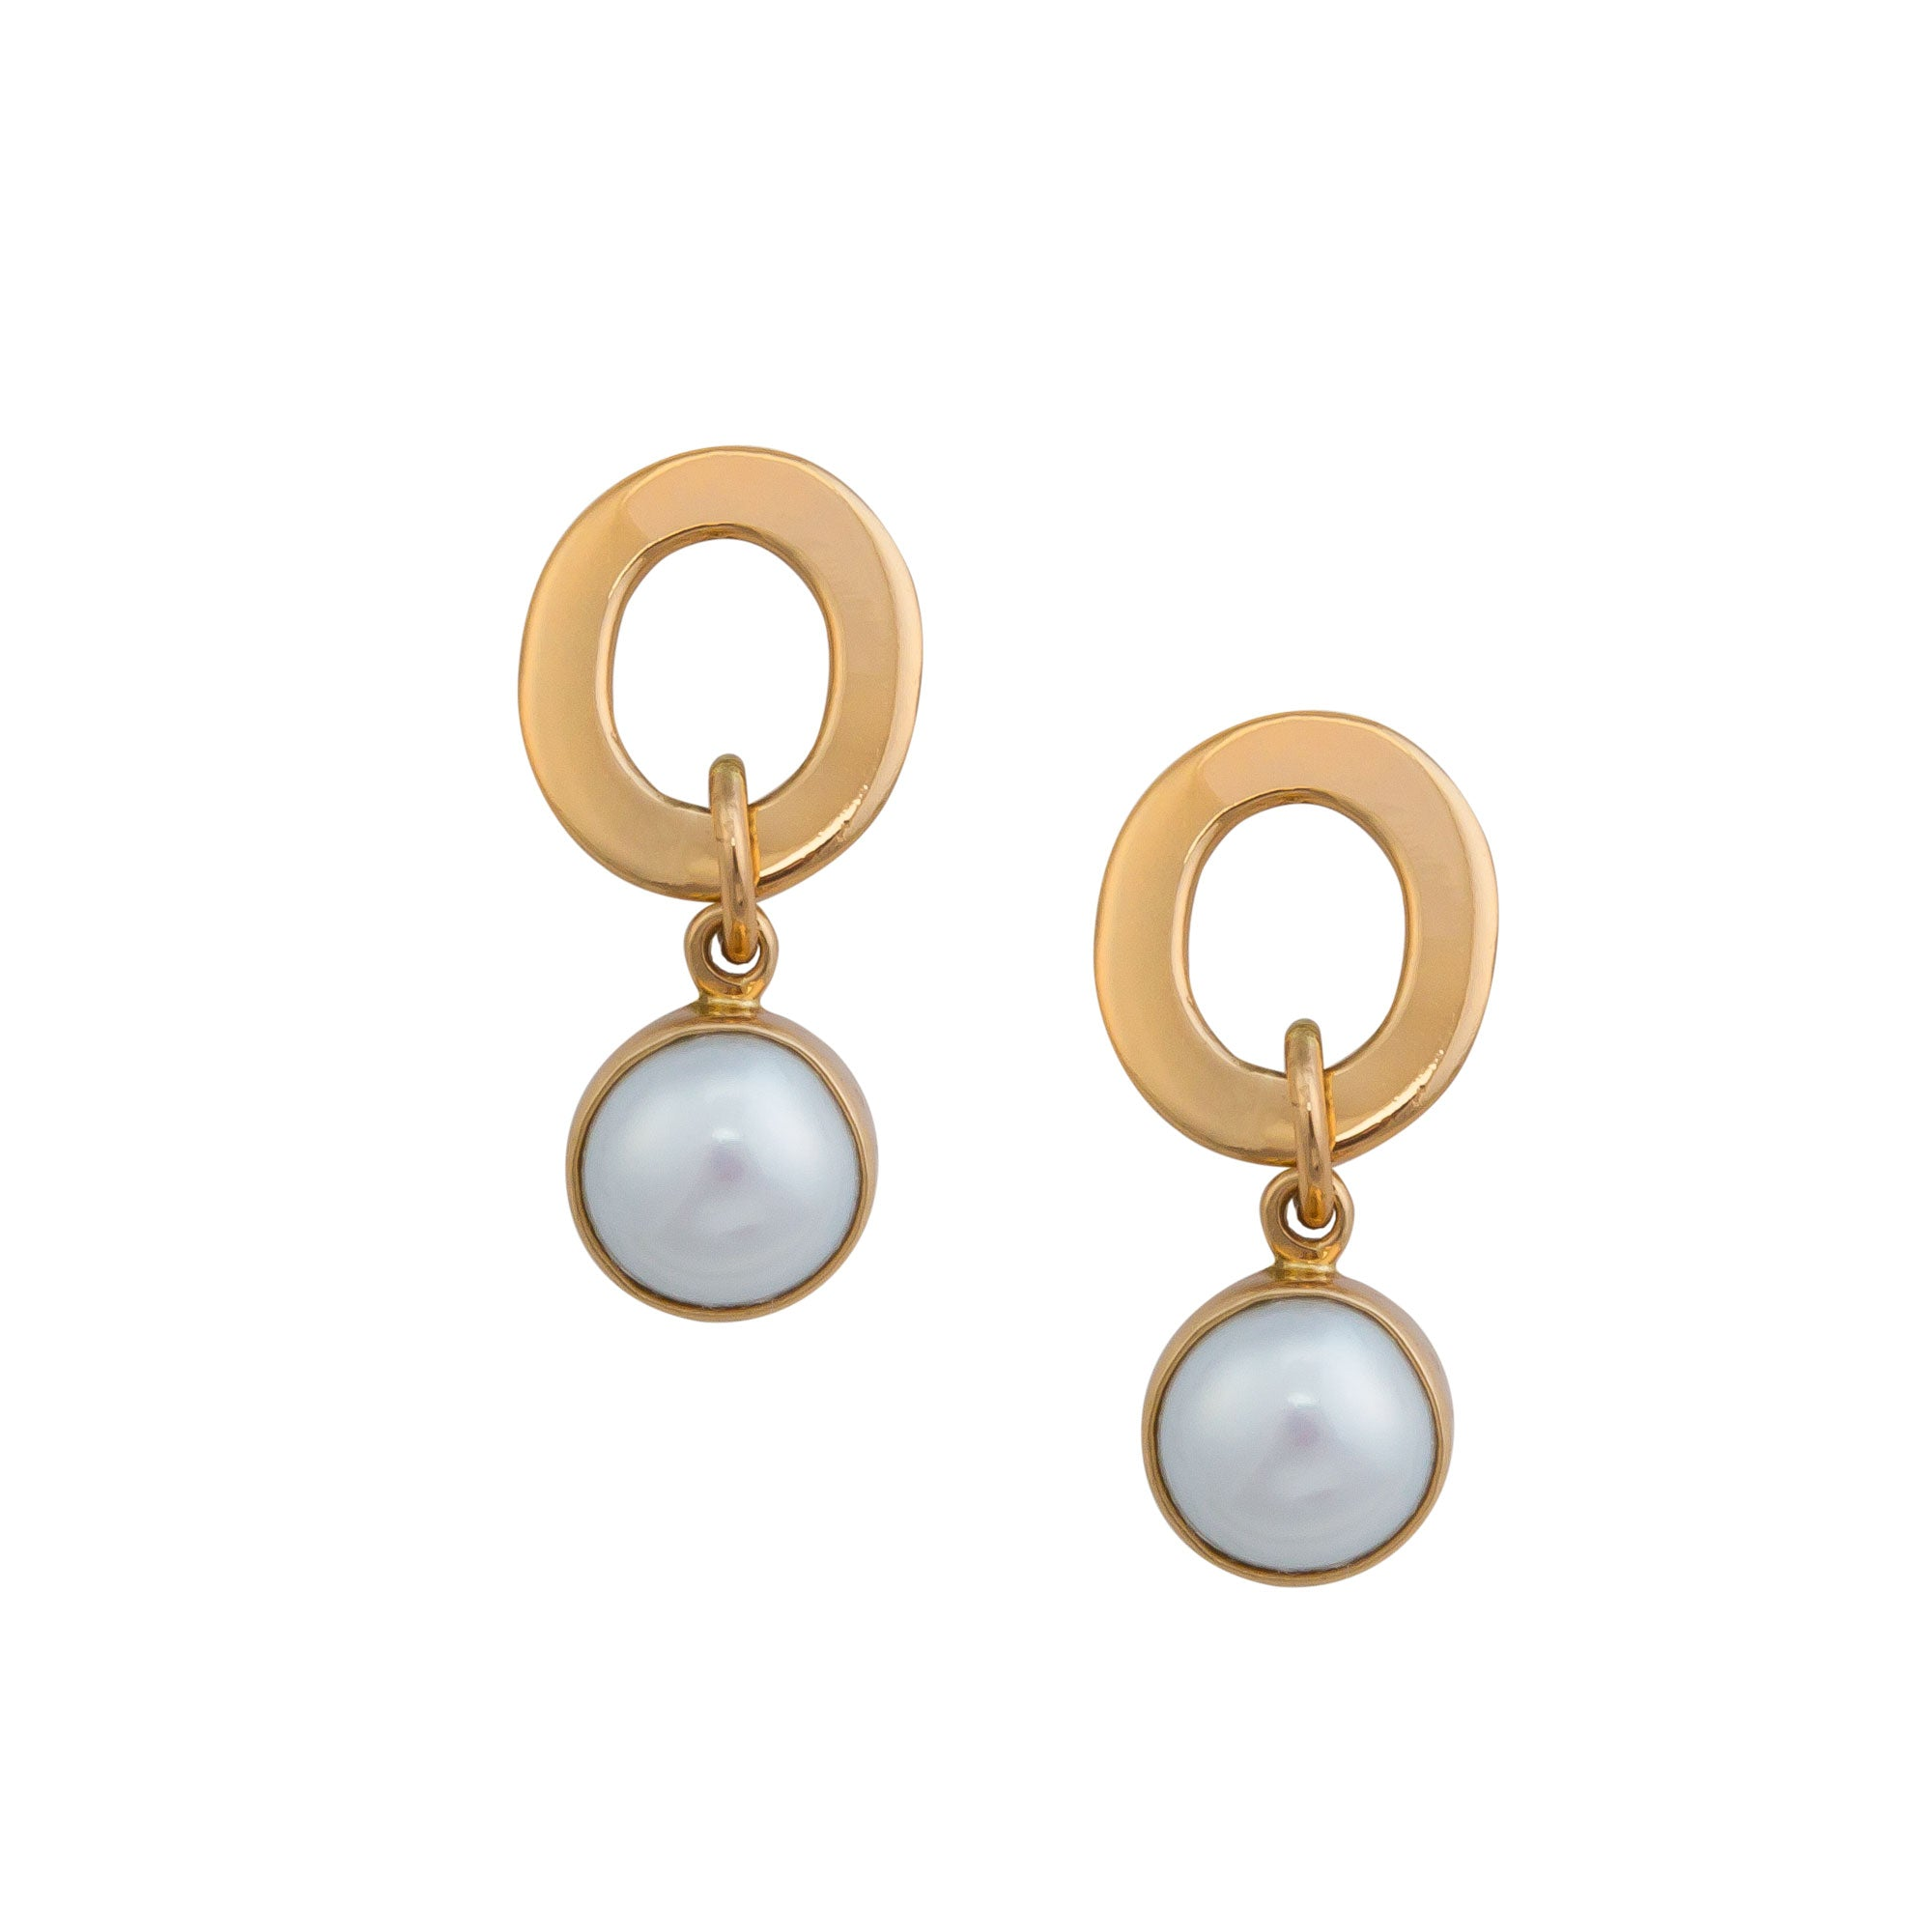 Alchemia Pearl Round Post Earrings | Charles Albert Inc